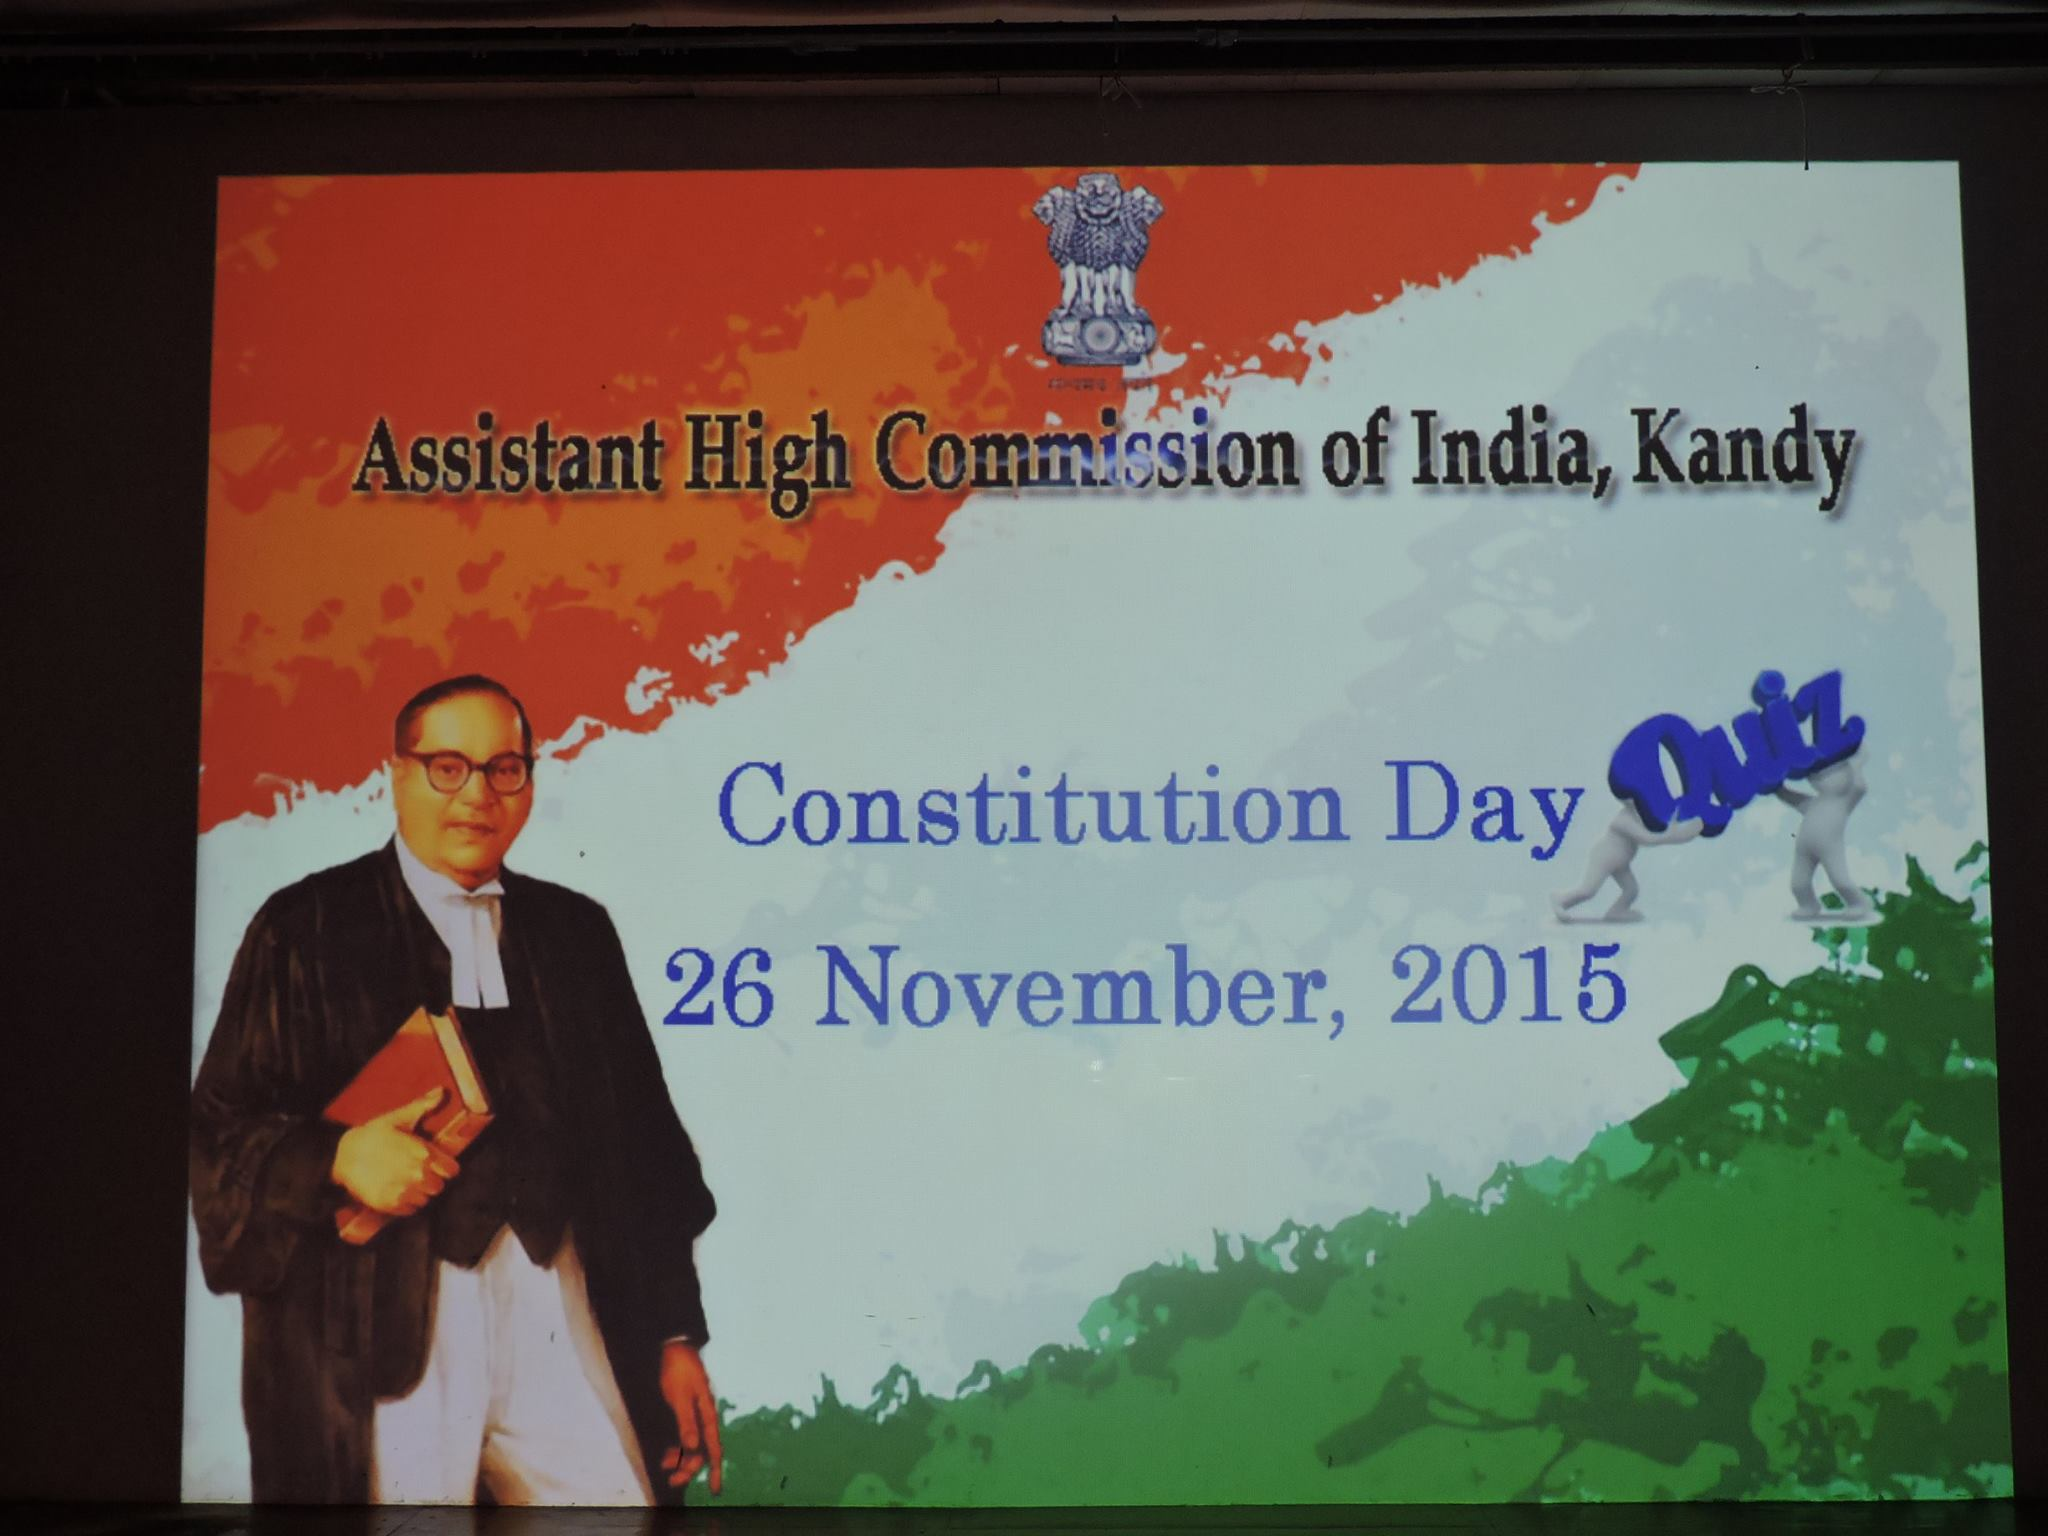 Welcome to Assistant High Commission of India KandySri Lanka 2048x1536